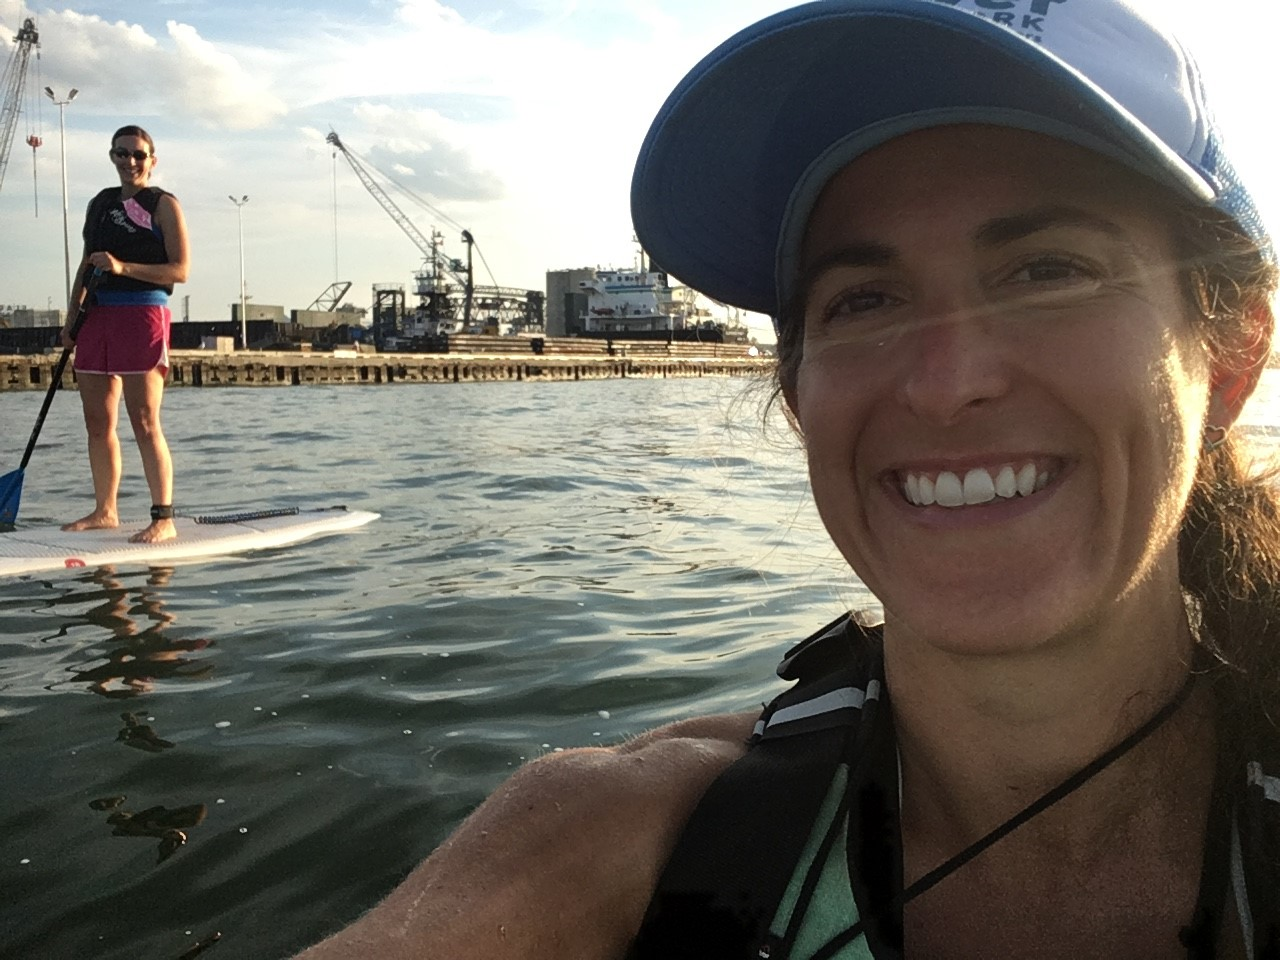 Lisa SUPing around Cleveland, Oct 1, 2019